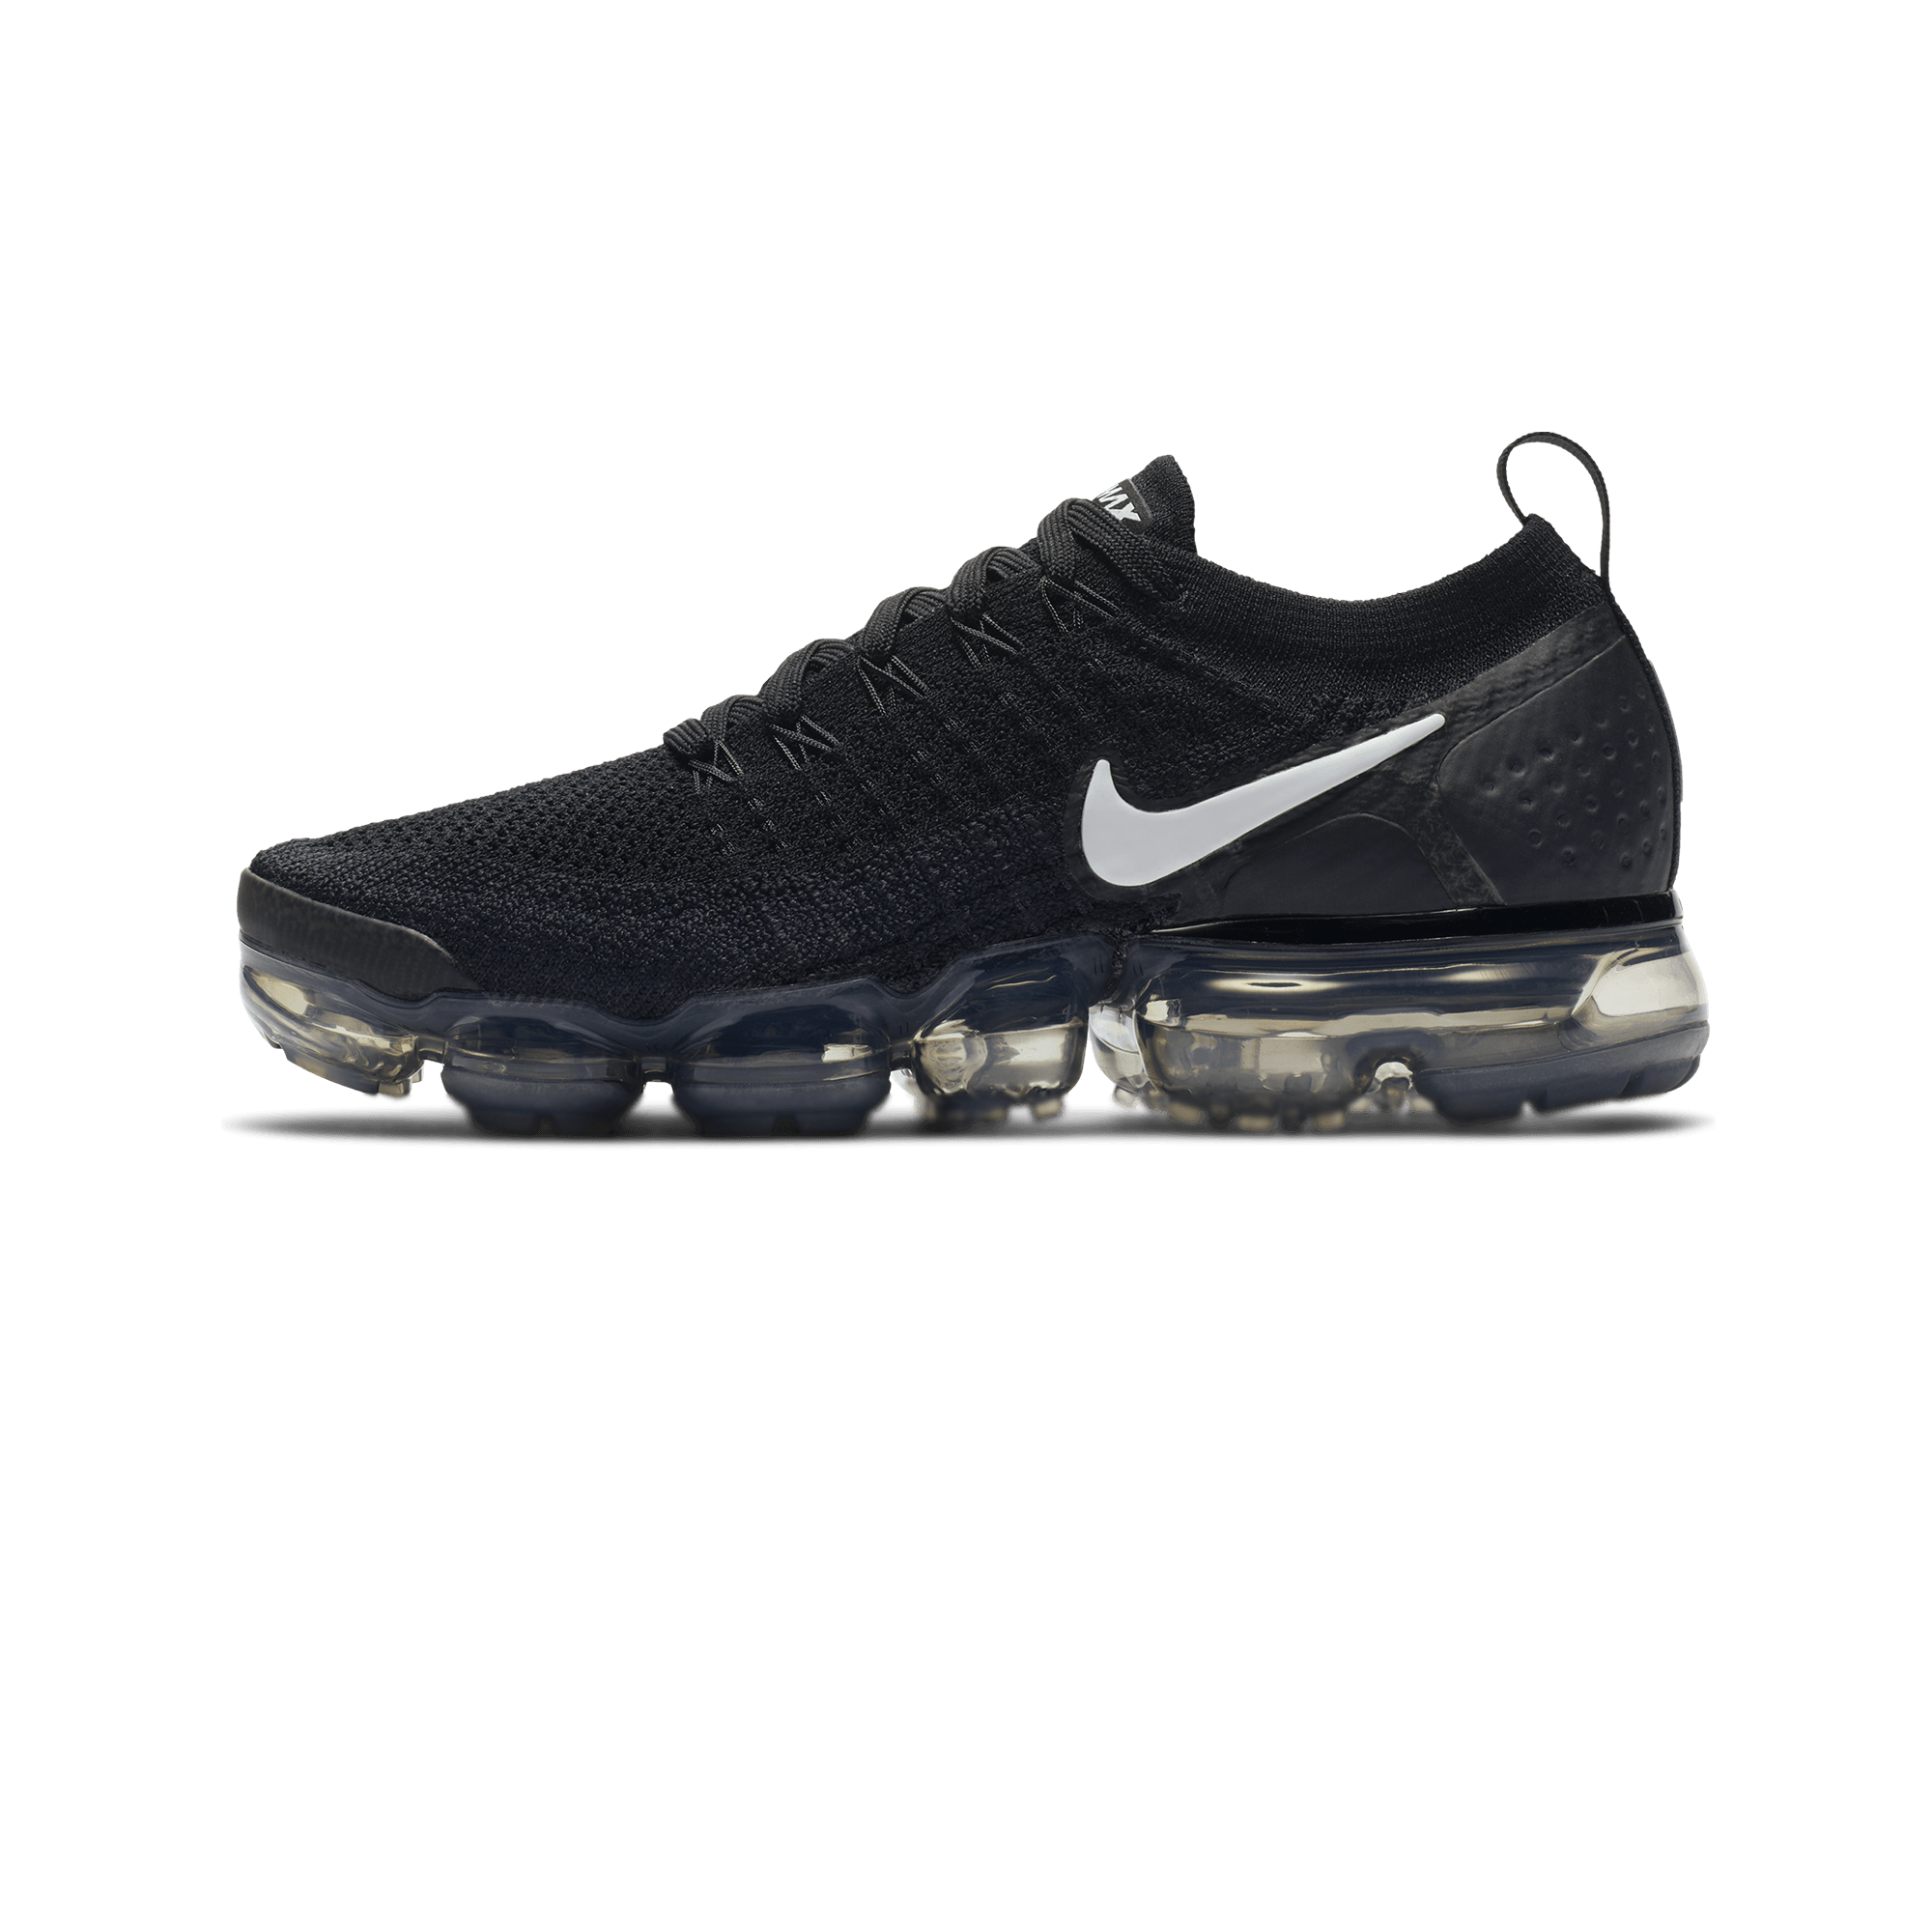 competitive price d0479 0ebd9 Nike Air Vapormax Flyknit 2 black - Men | Holypopstore.com